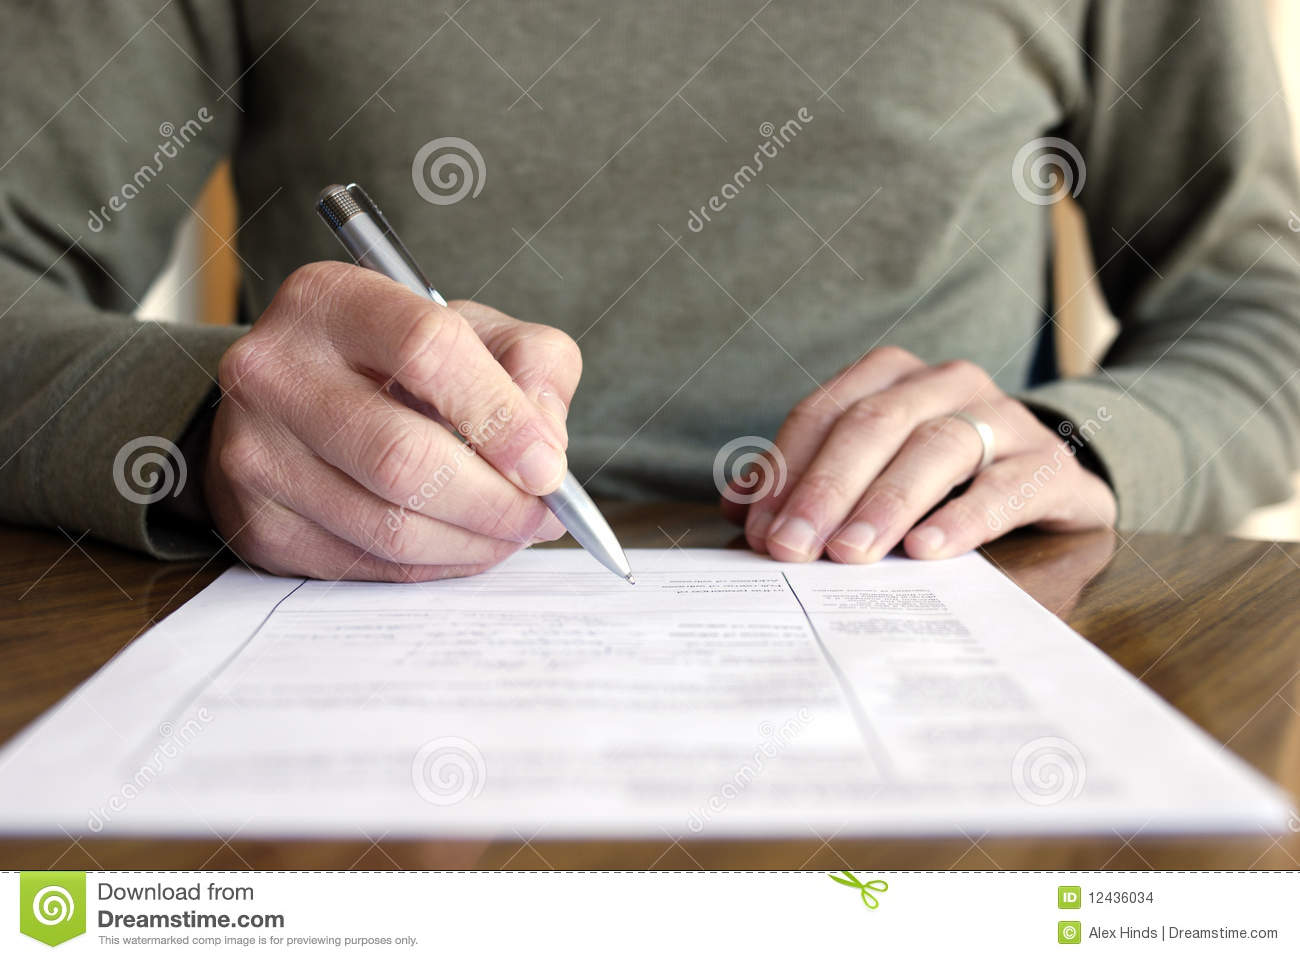 man-writing-paper-pen-table-12436034.jpg